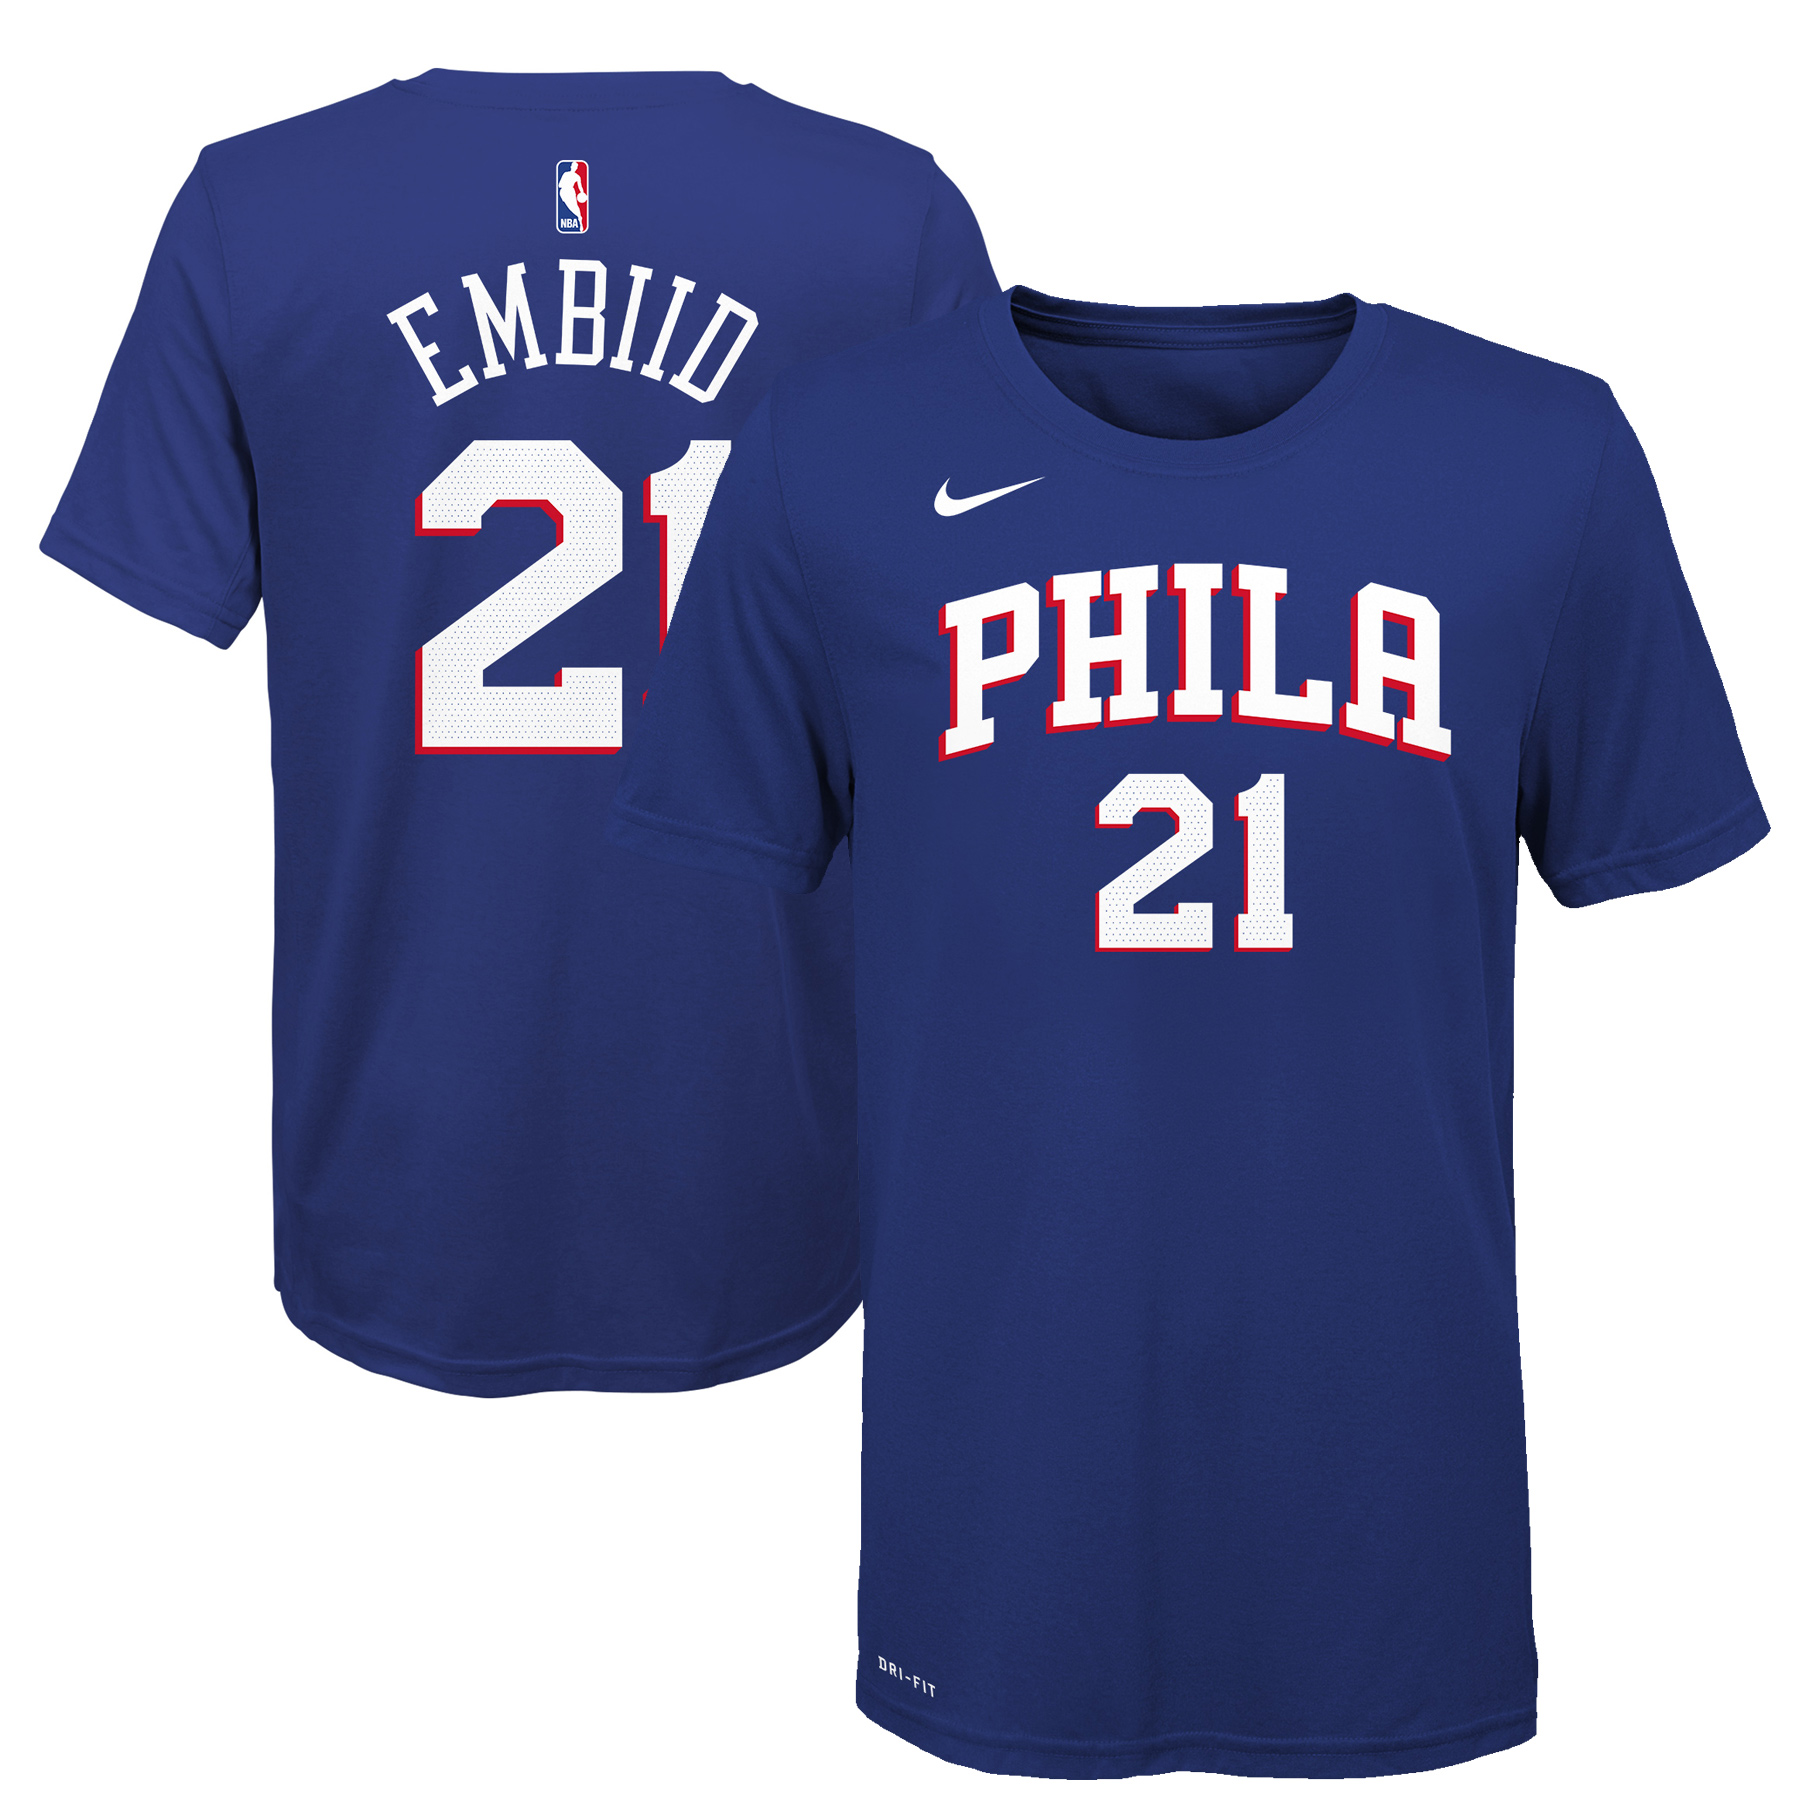 Joel Embiid Philadelphia 76ers Nike Youth Name & Number T-Shirt - Royal